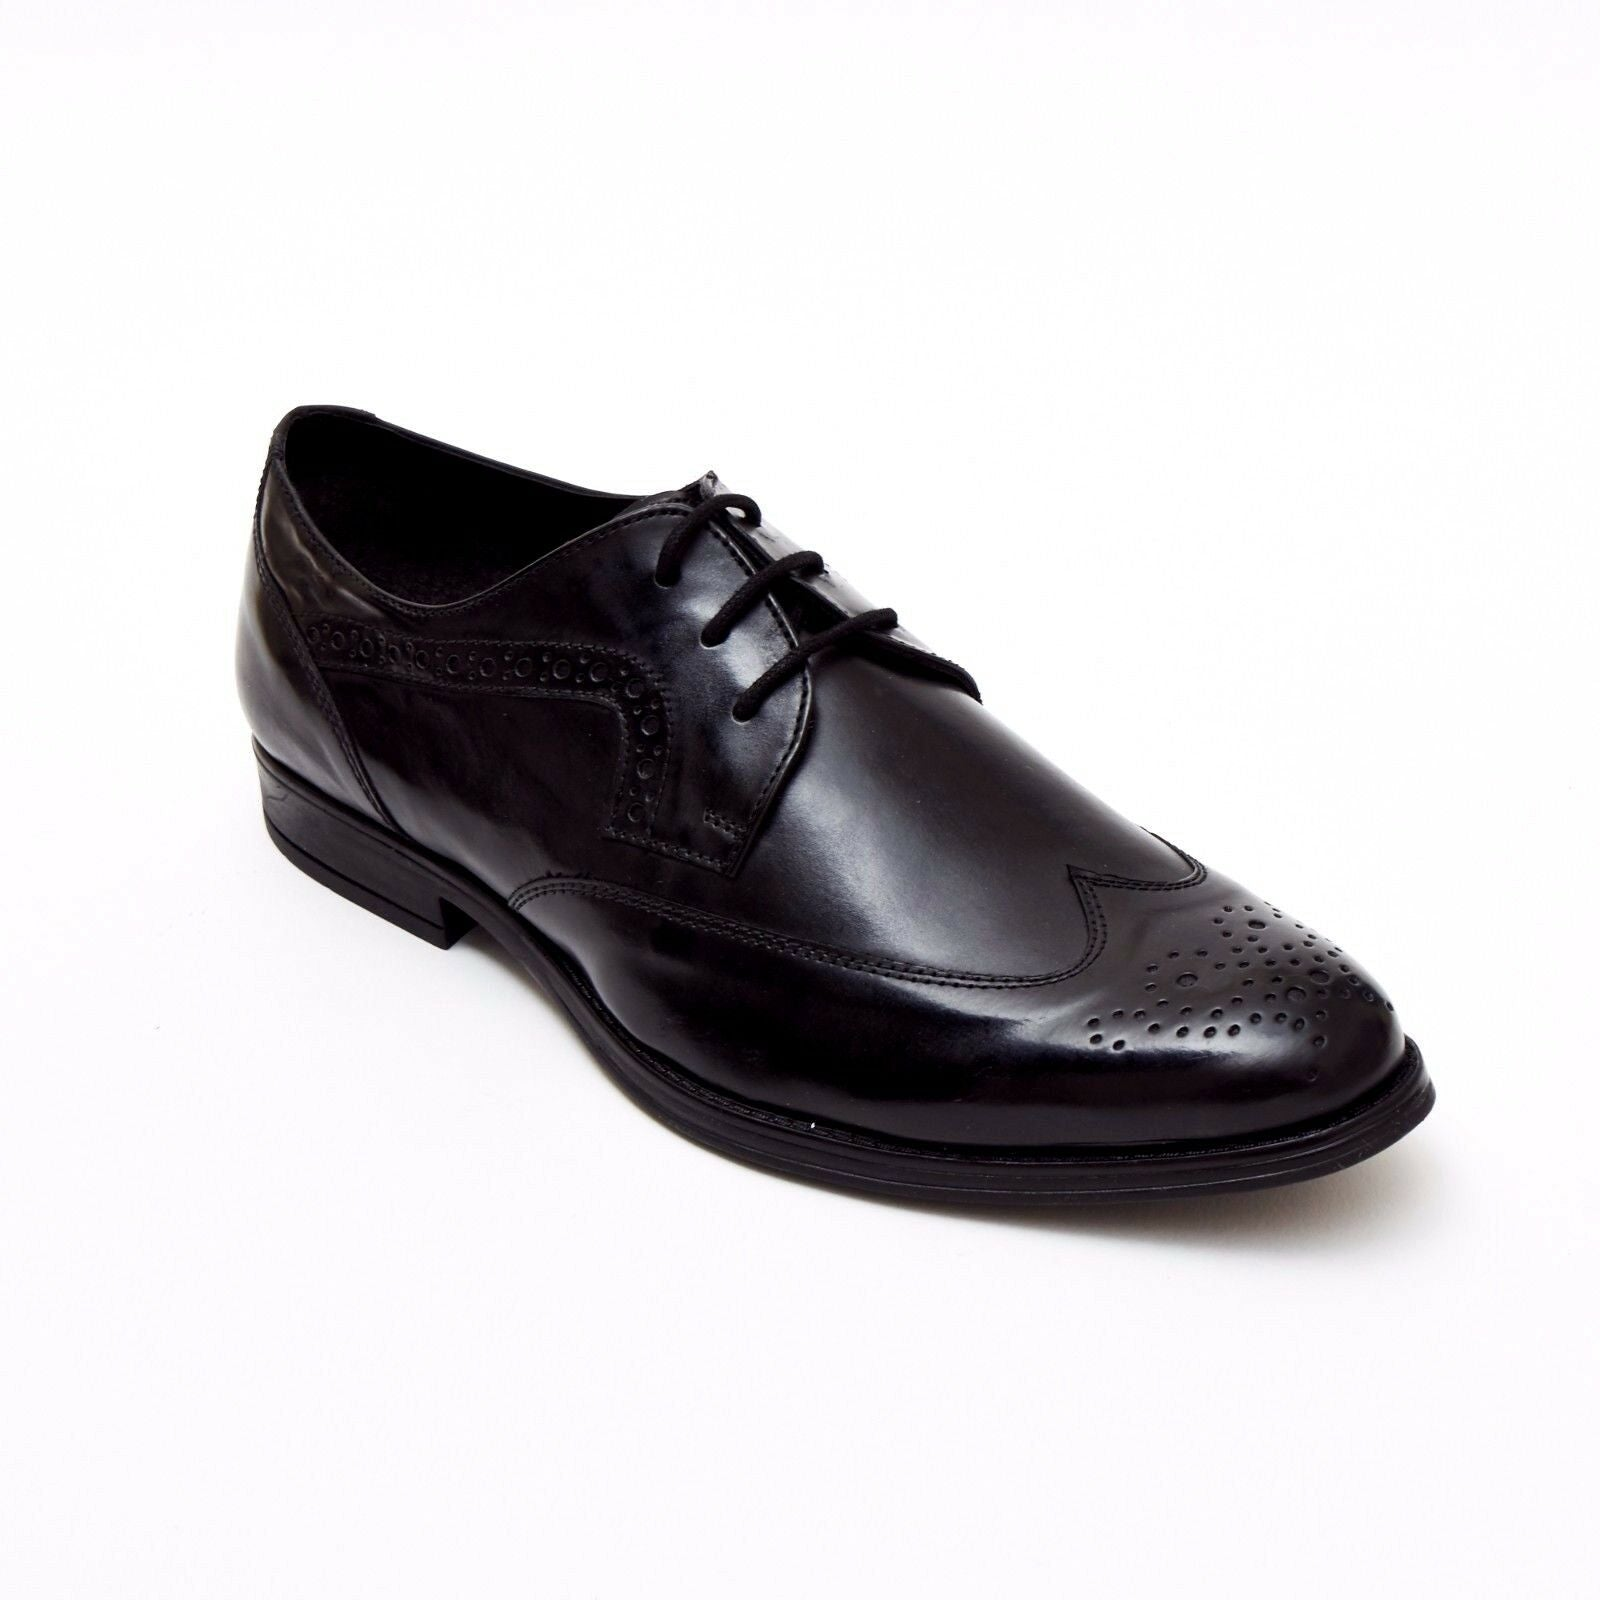 Mens Leather Brogue Classic Oxford Shoe - Black 24102